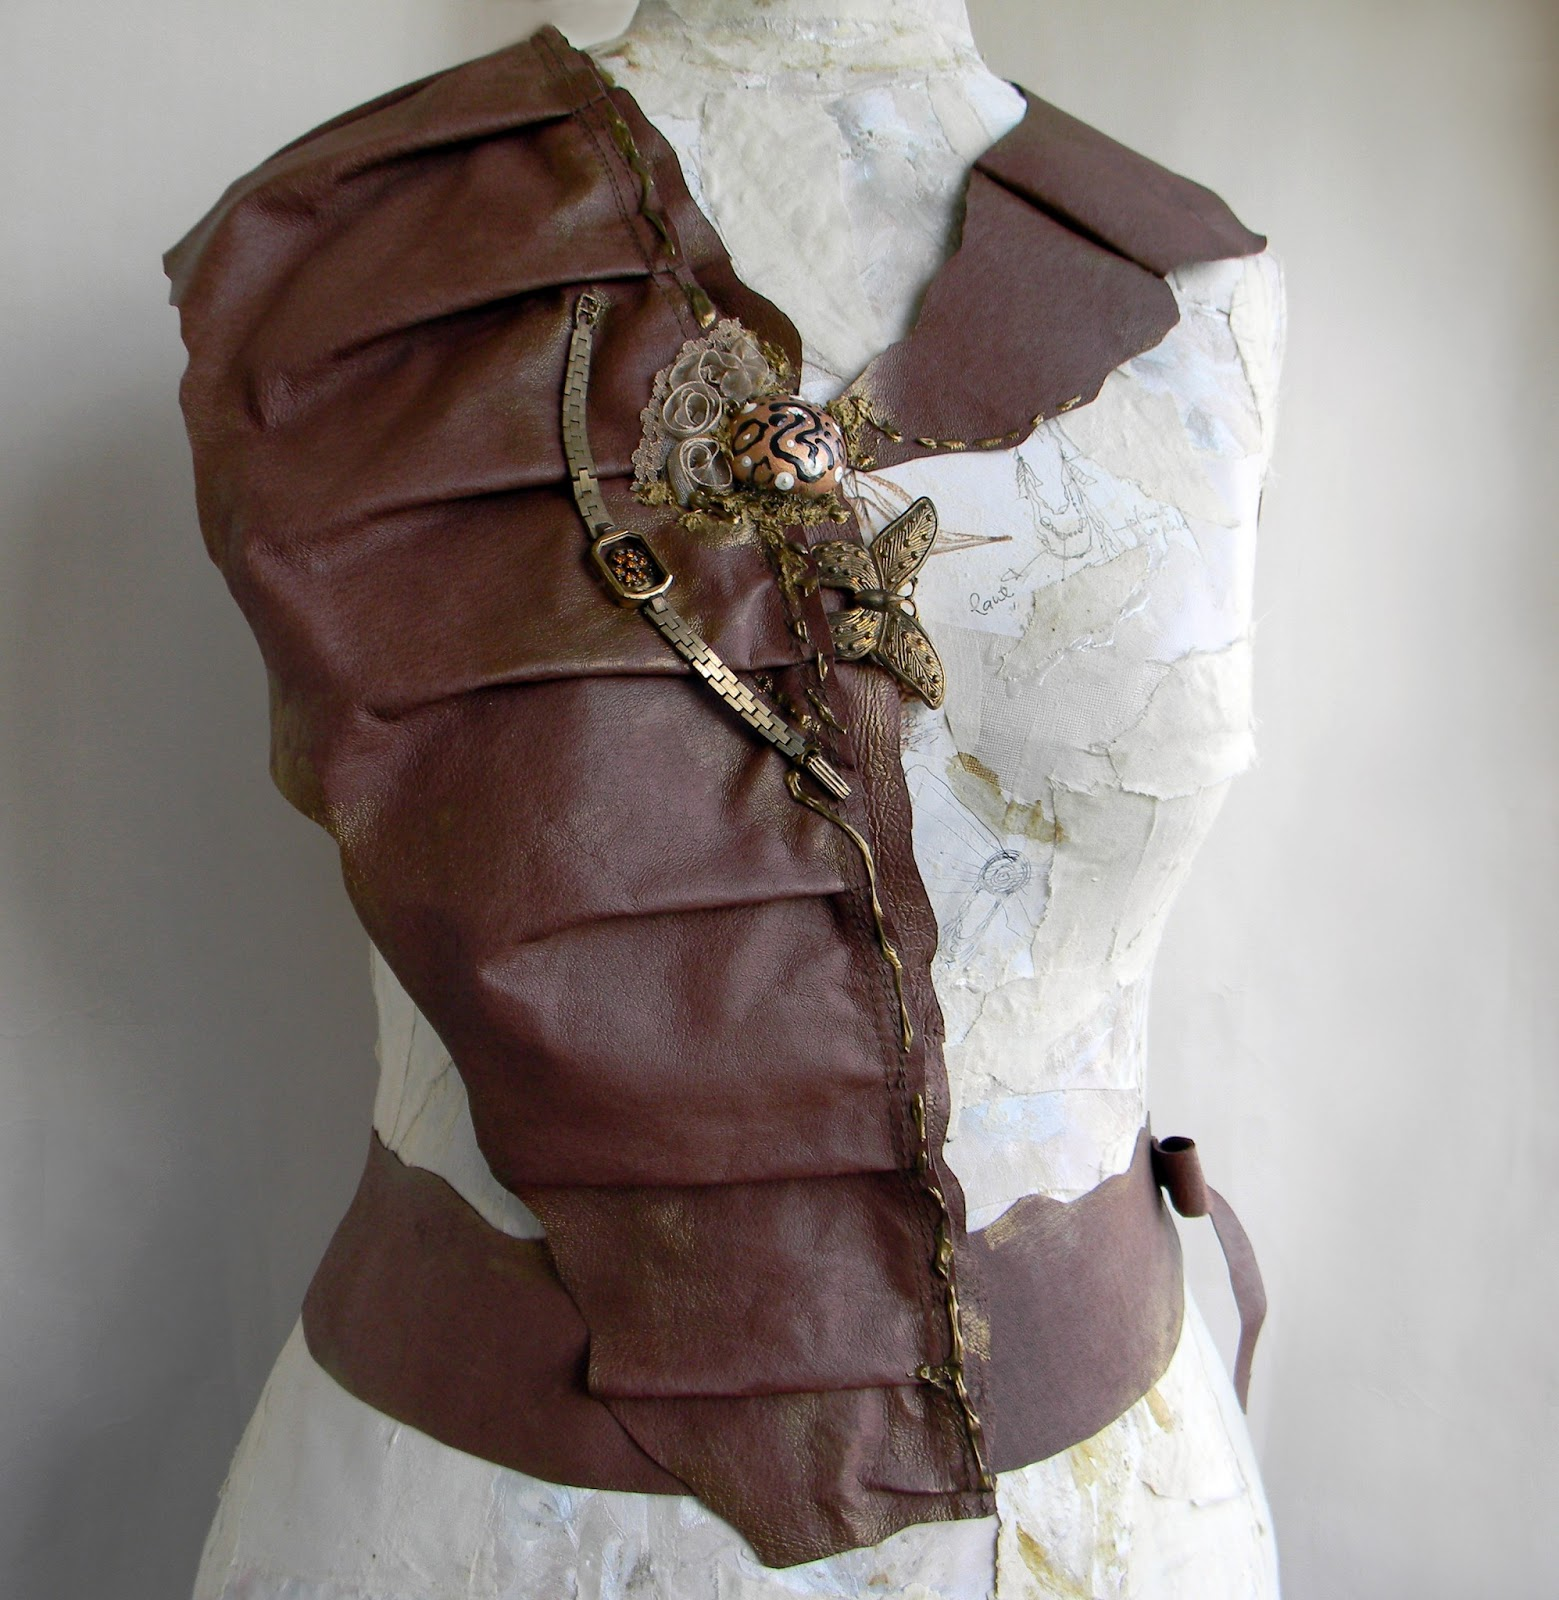 Unique Handmade Body Jewelry Fashion Steampunk Harness Leather Harness